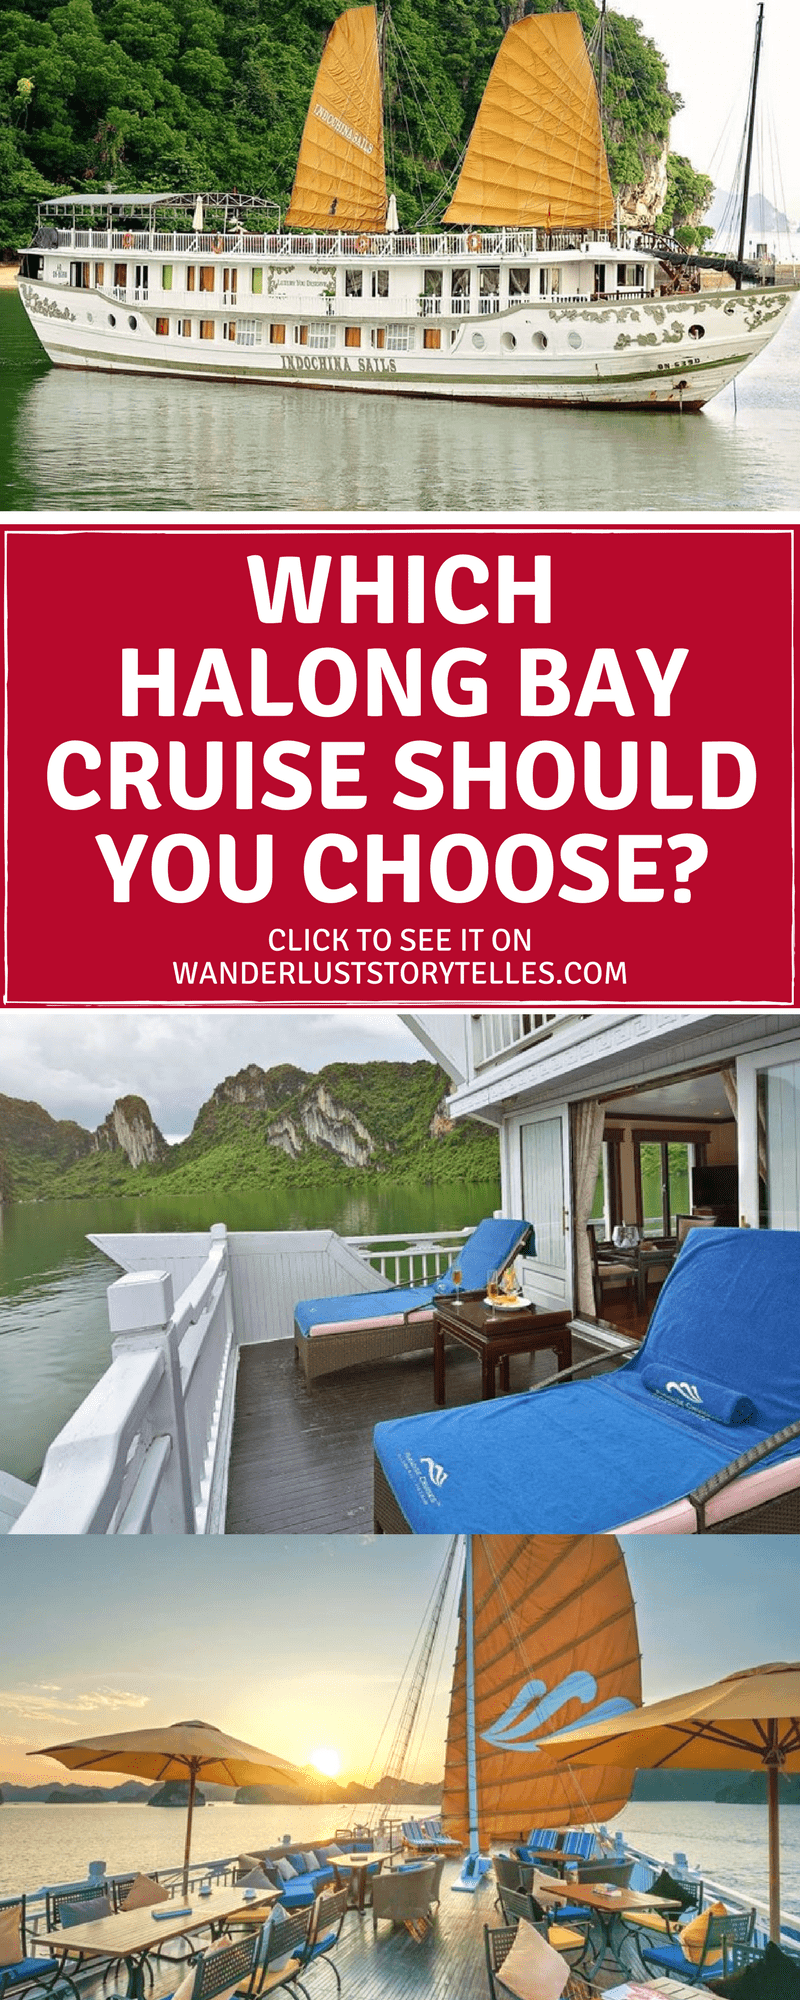 Wondering which Halong Bay cruise to choose for your Vietnam holiday? The decision can be slightly overwhelming, so we wanted to help you choose the right cruise for you! Visit our guide to make it easy peasy!  #vietnam #cruise #asia